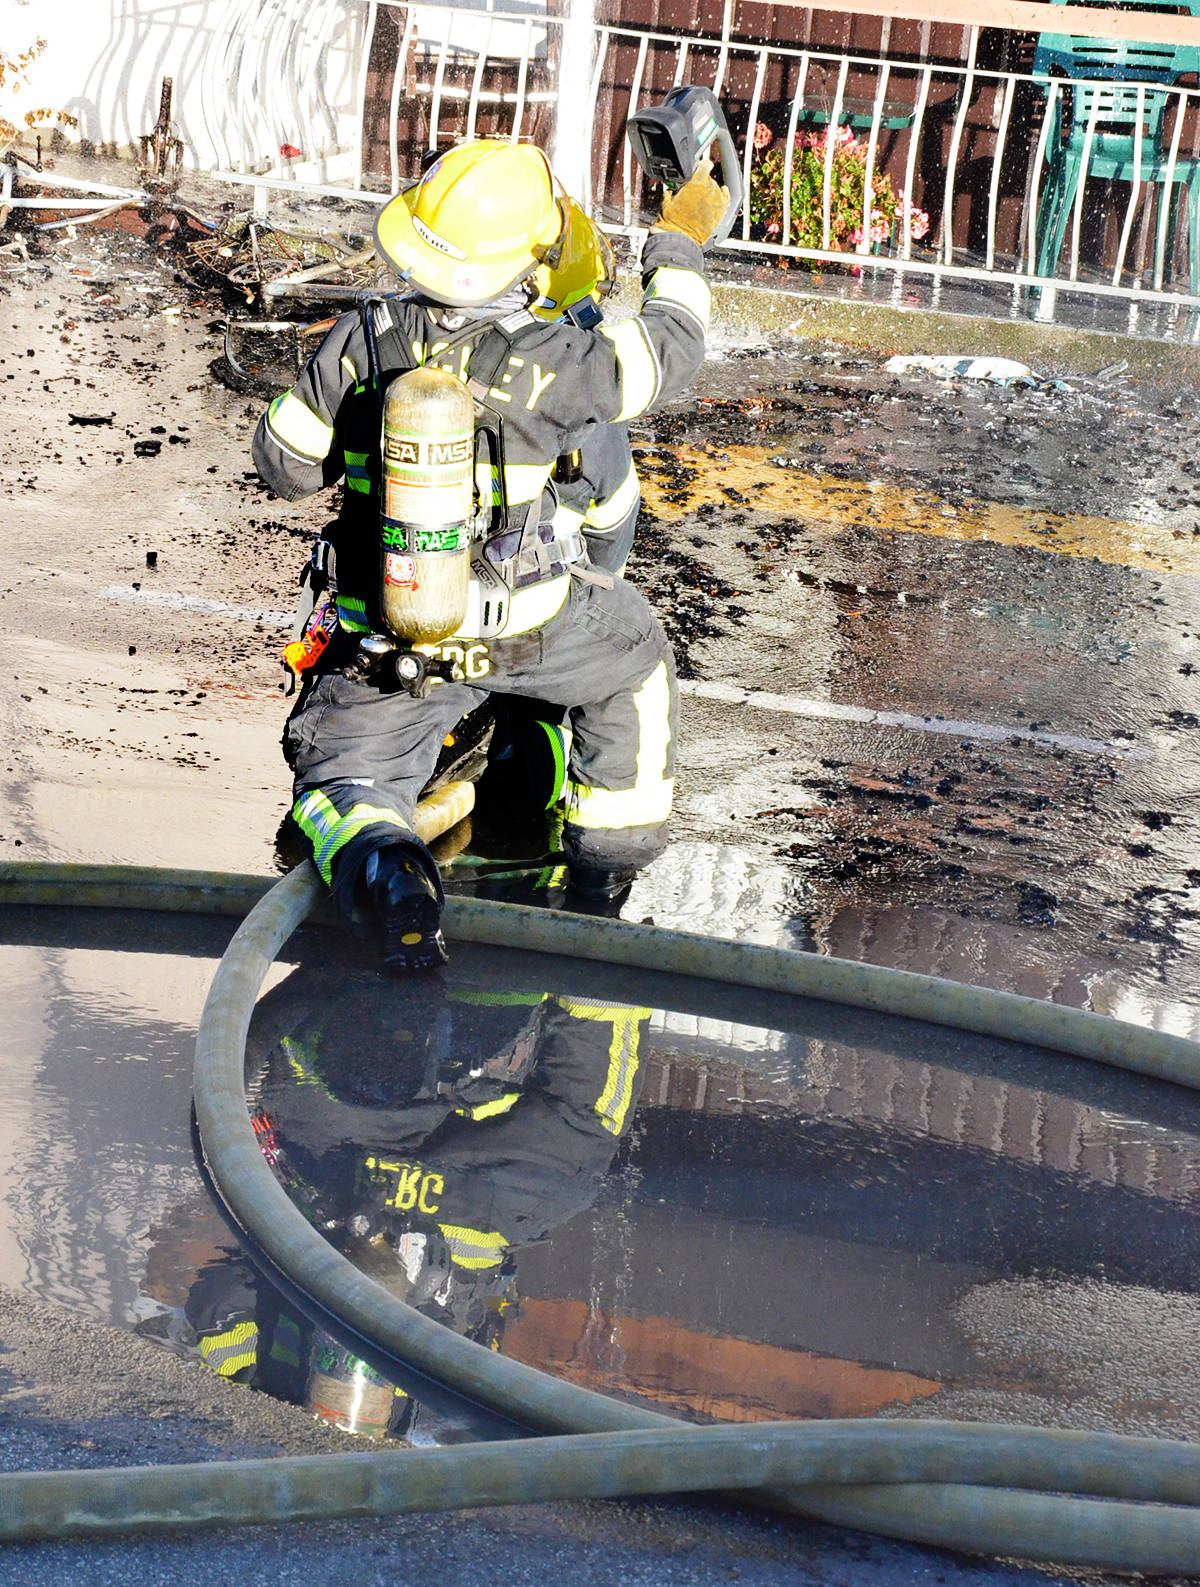 Firefighters used a thermal camera to detect hot spots. (Heather Colpitts/Langley Advance Times)